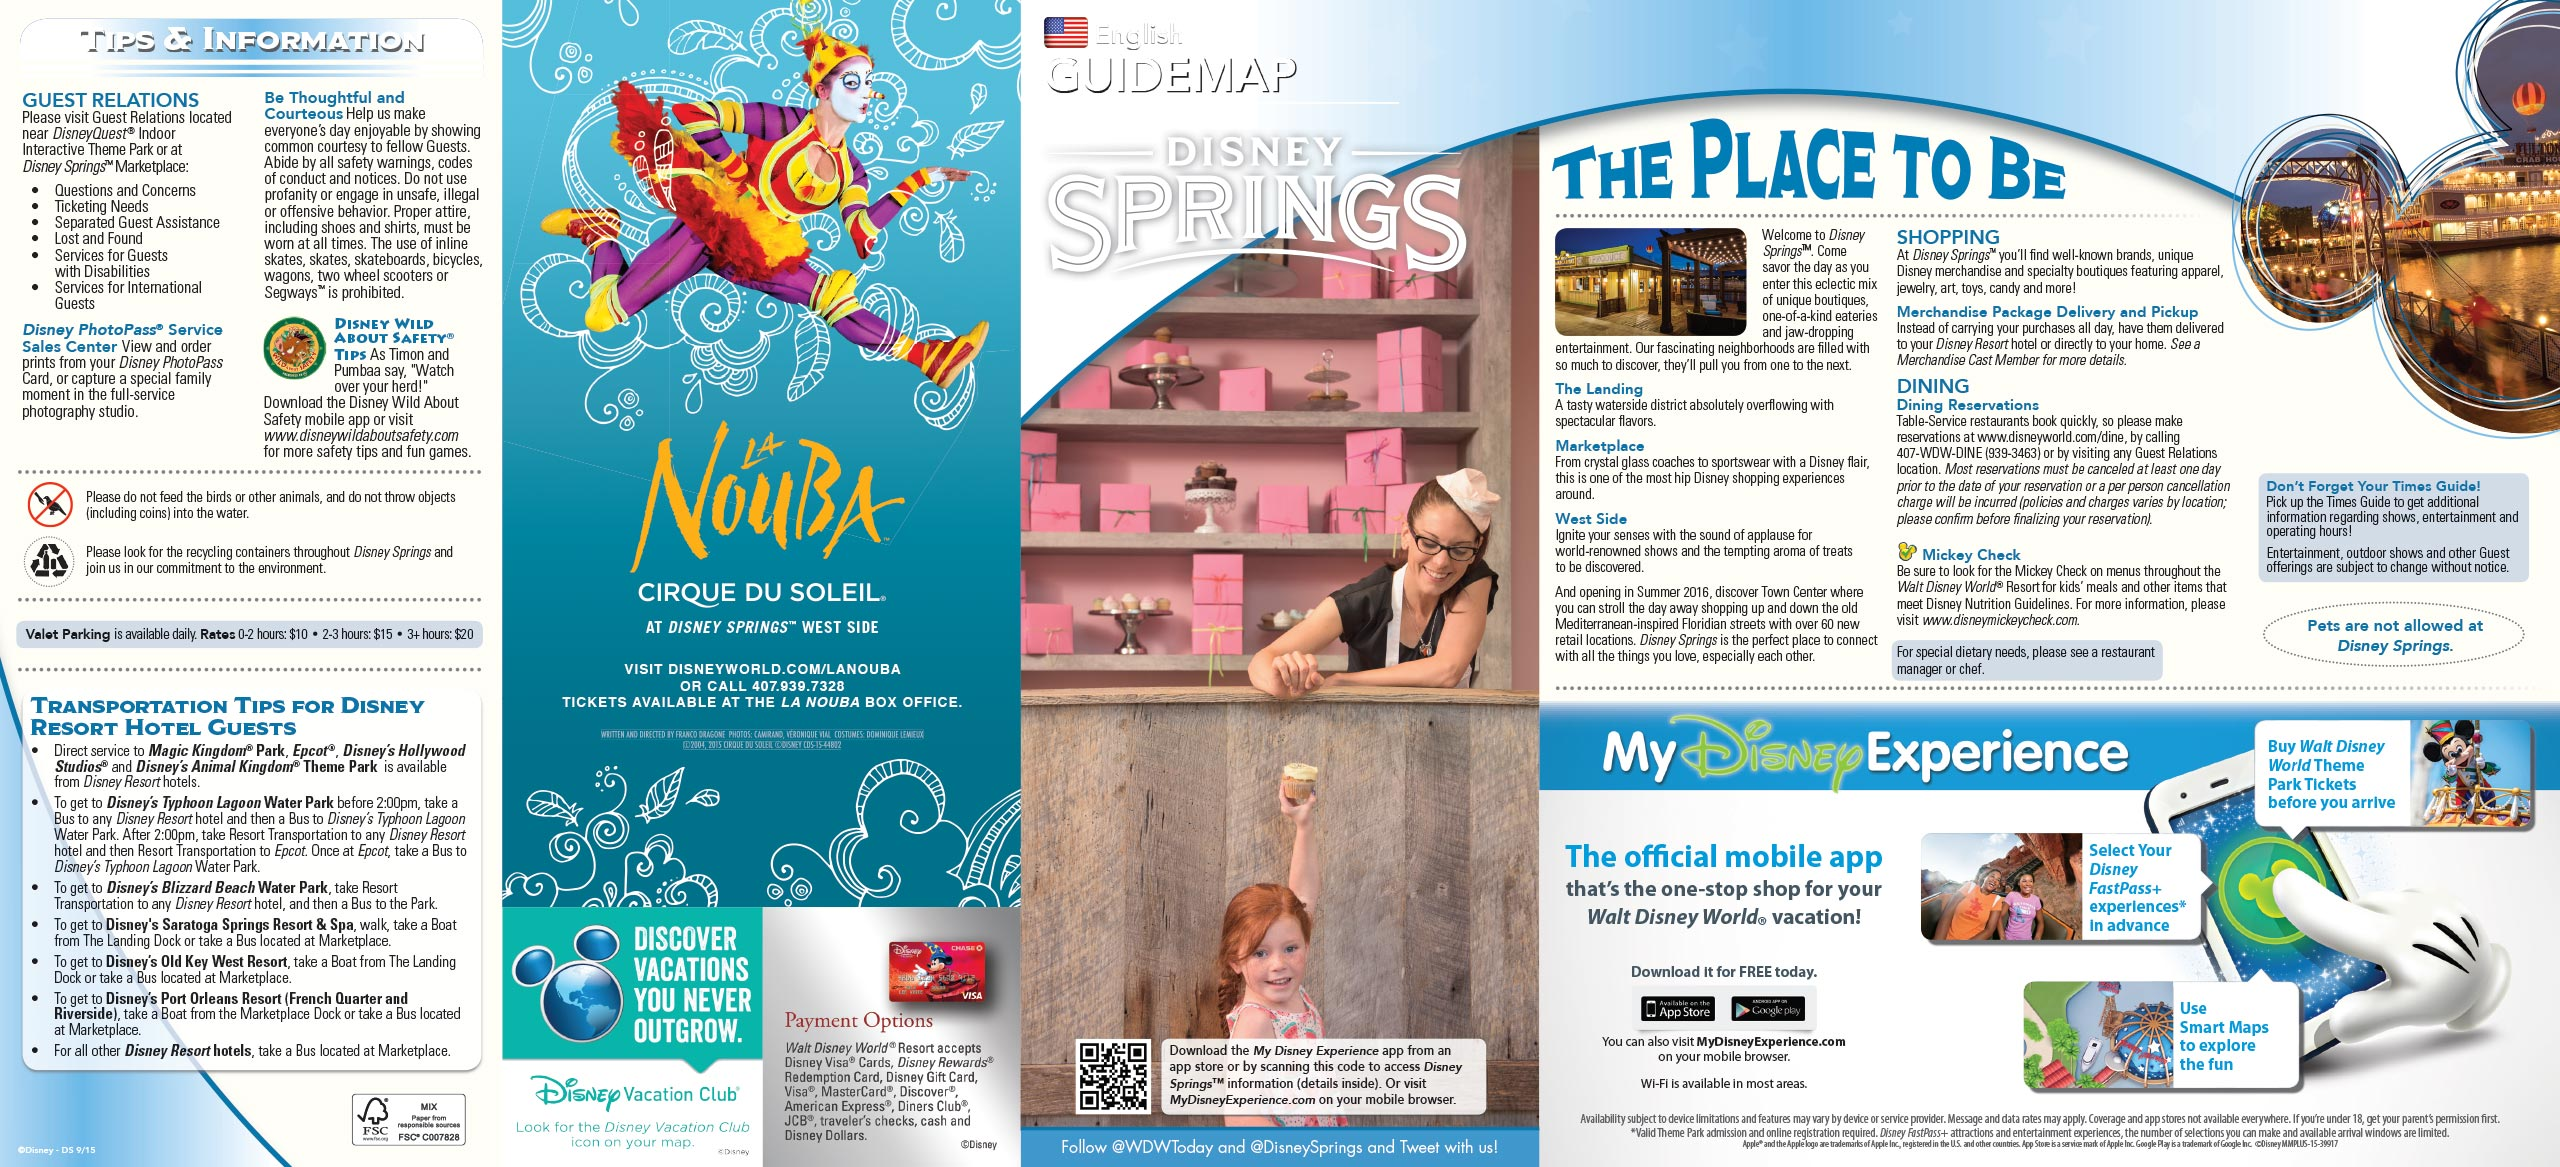 Disney Springs guide map - Front